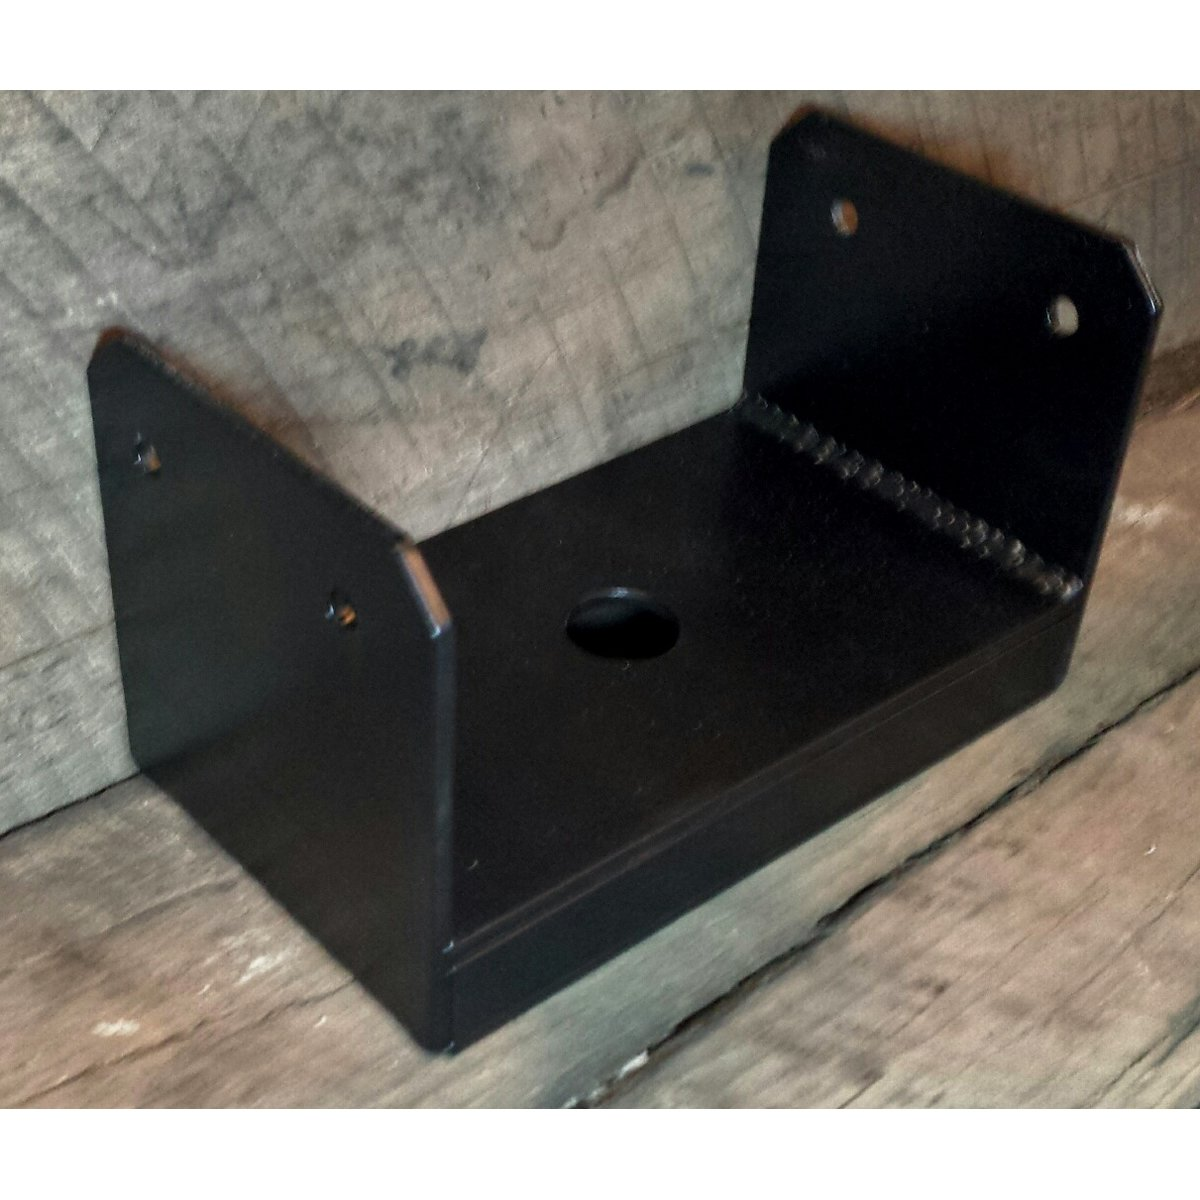 Uplift Post Base Brackets Painted Black